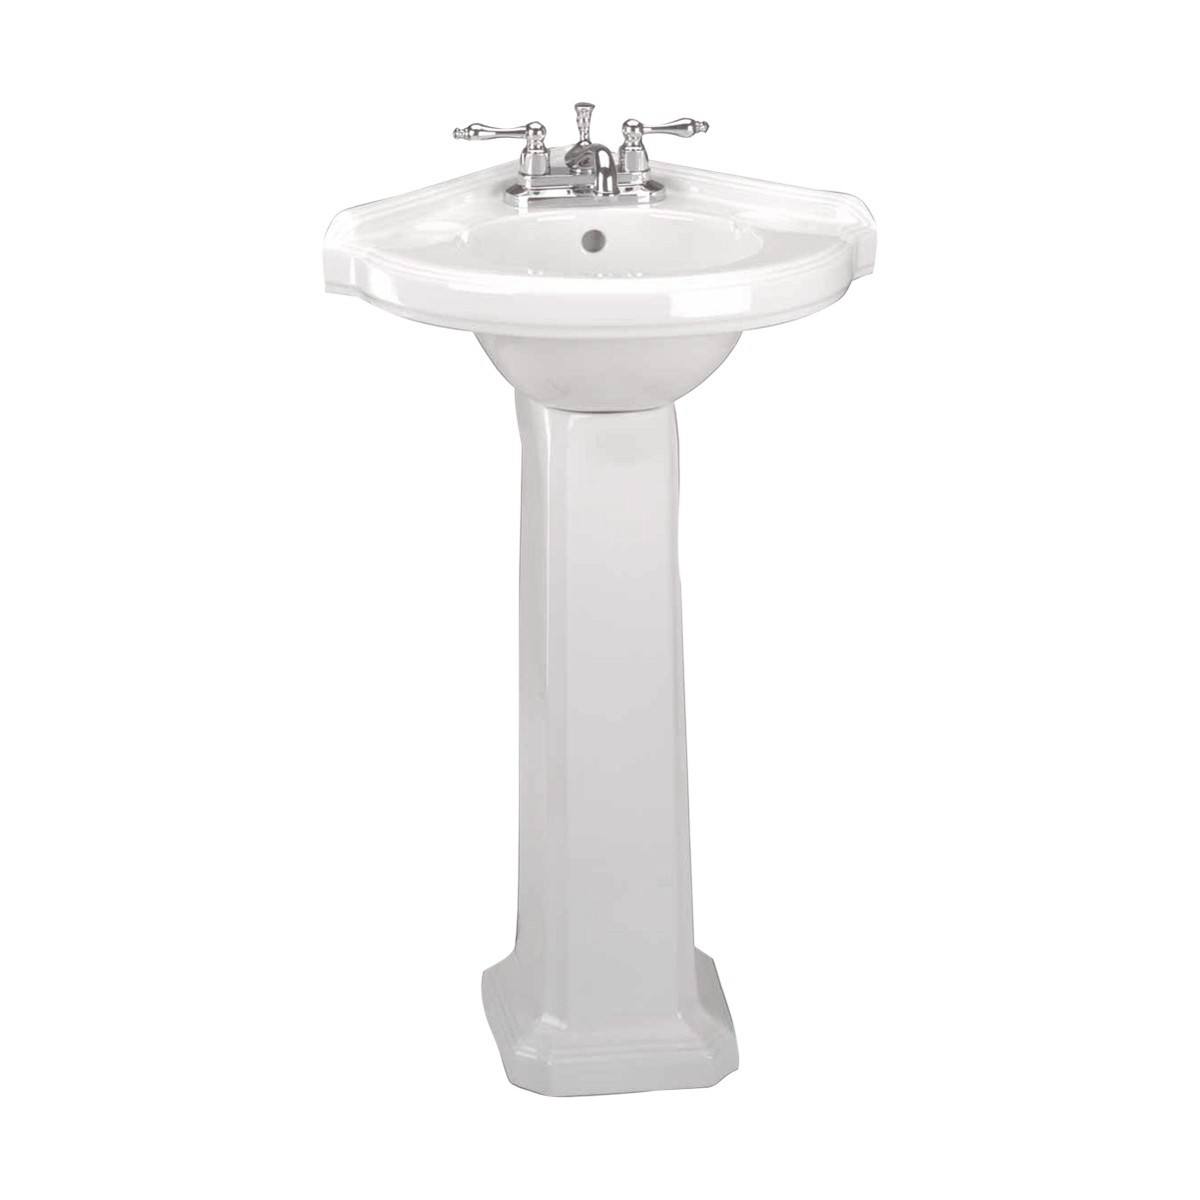 Small Corner Pedestal Sink : Corner Pedestal Sink White Pedestal Sink Renovators Supply